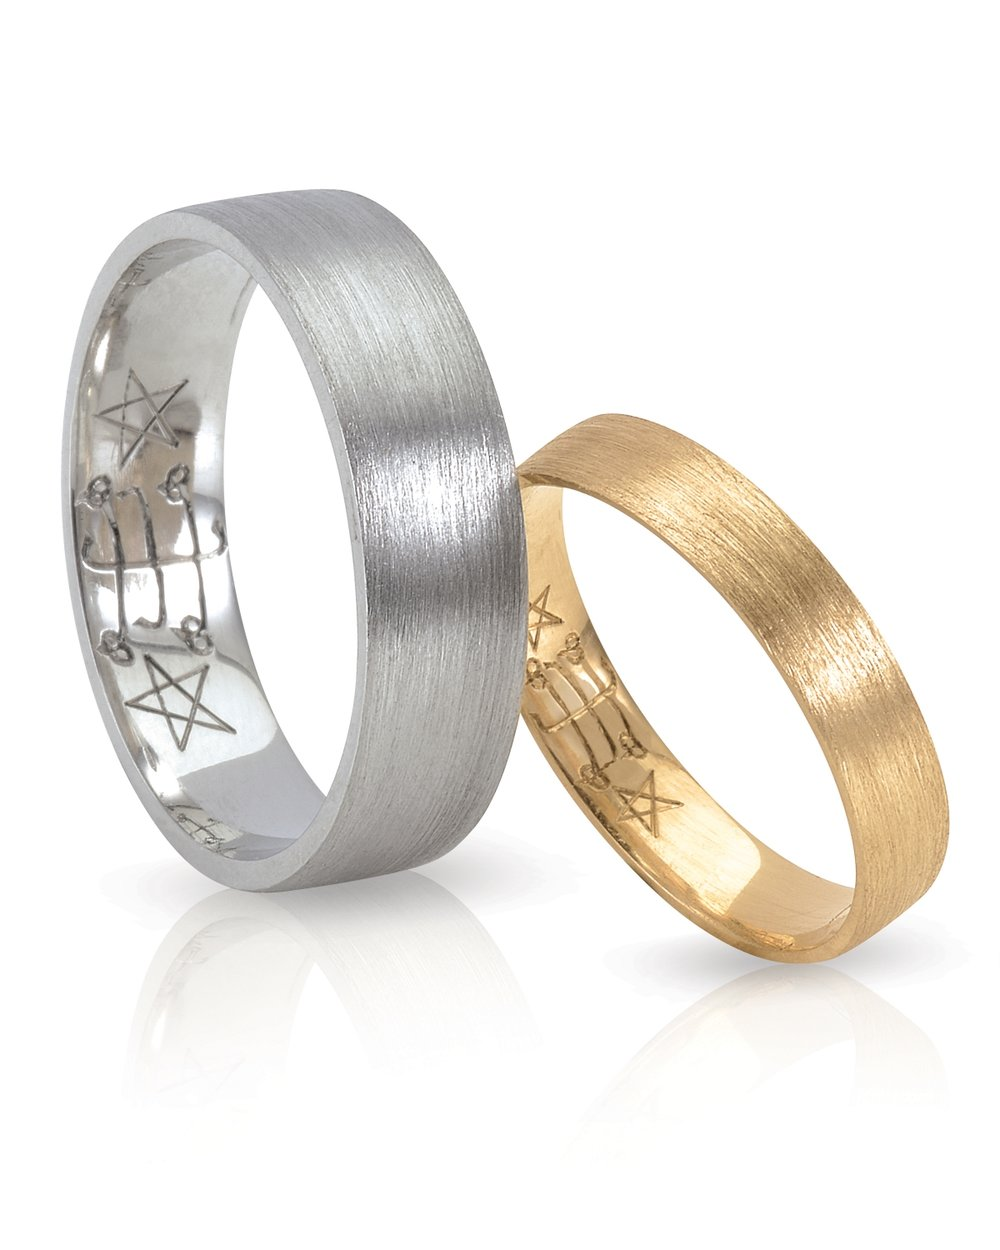 WEDDING BANDS | 18 karat yellow and white gold flat bands with brushed finishes and hand engraved Ringstone Symbol.